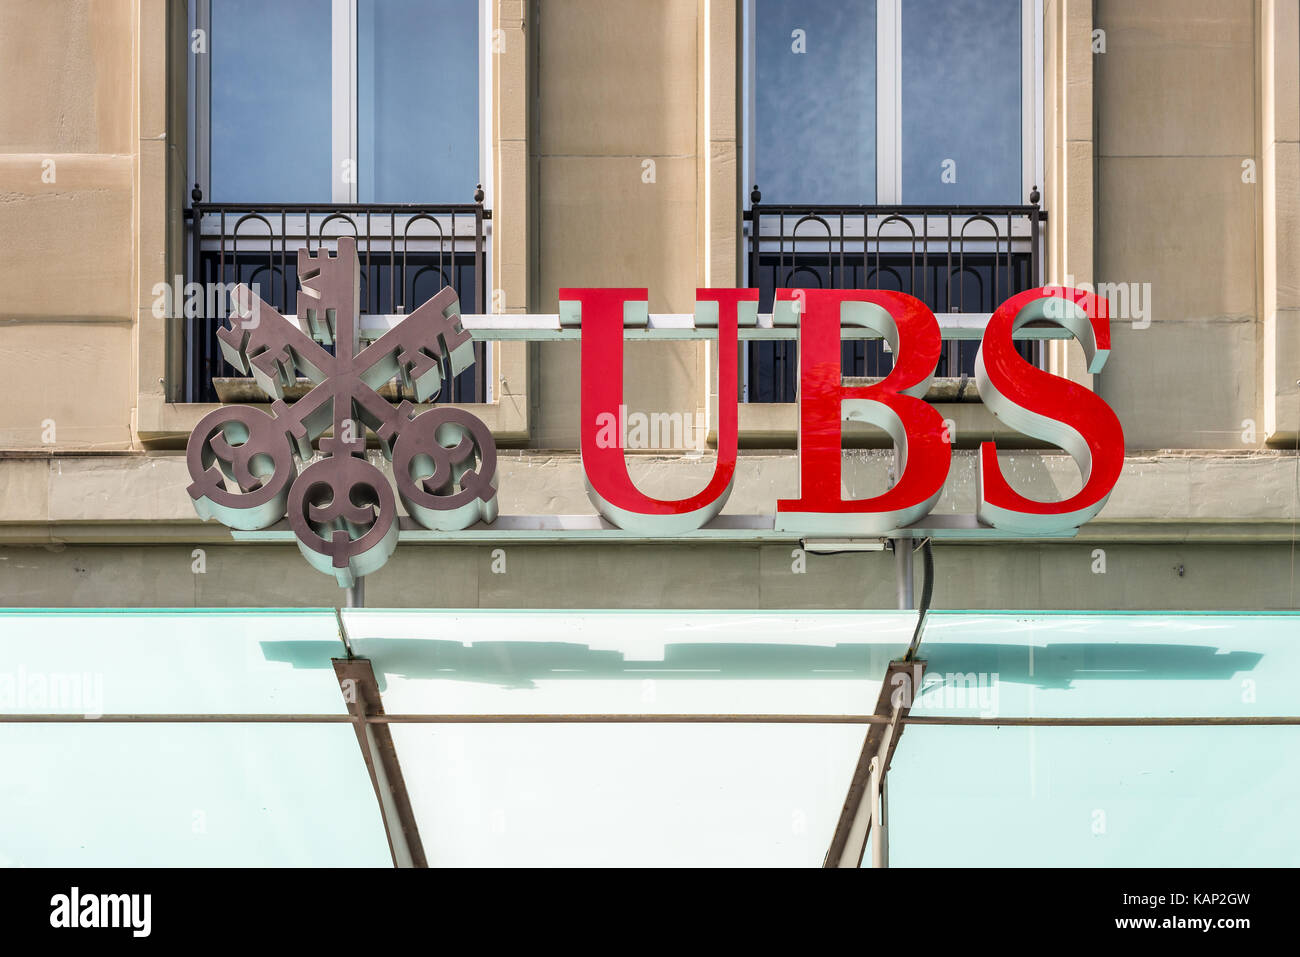 Ubs bank switzerland stock photos ubs bank switzerland stock bern switzerland may 26 2016 ubs bank symbol at the city center buycottarizona Image collections